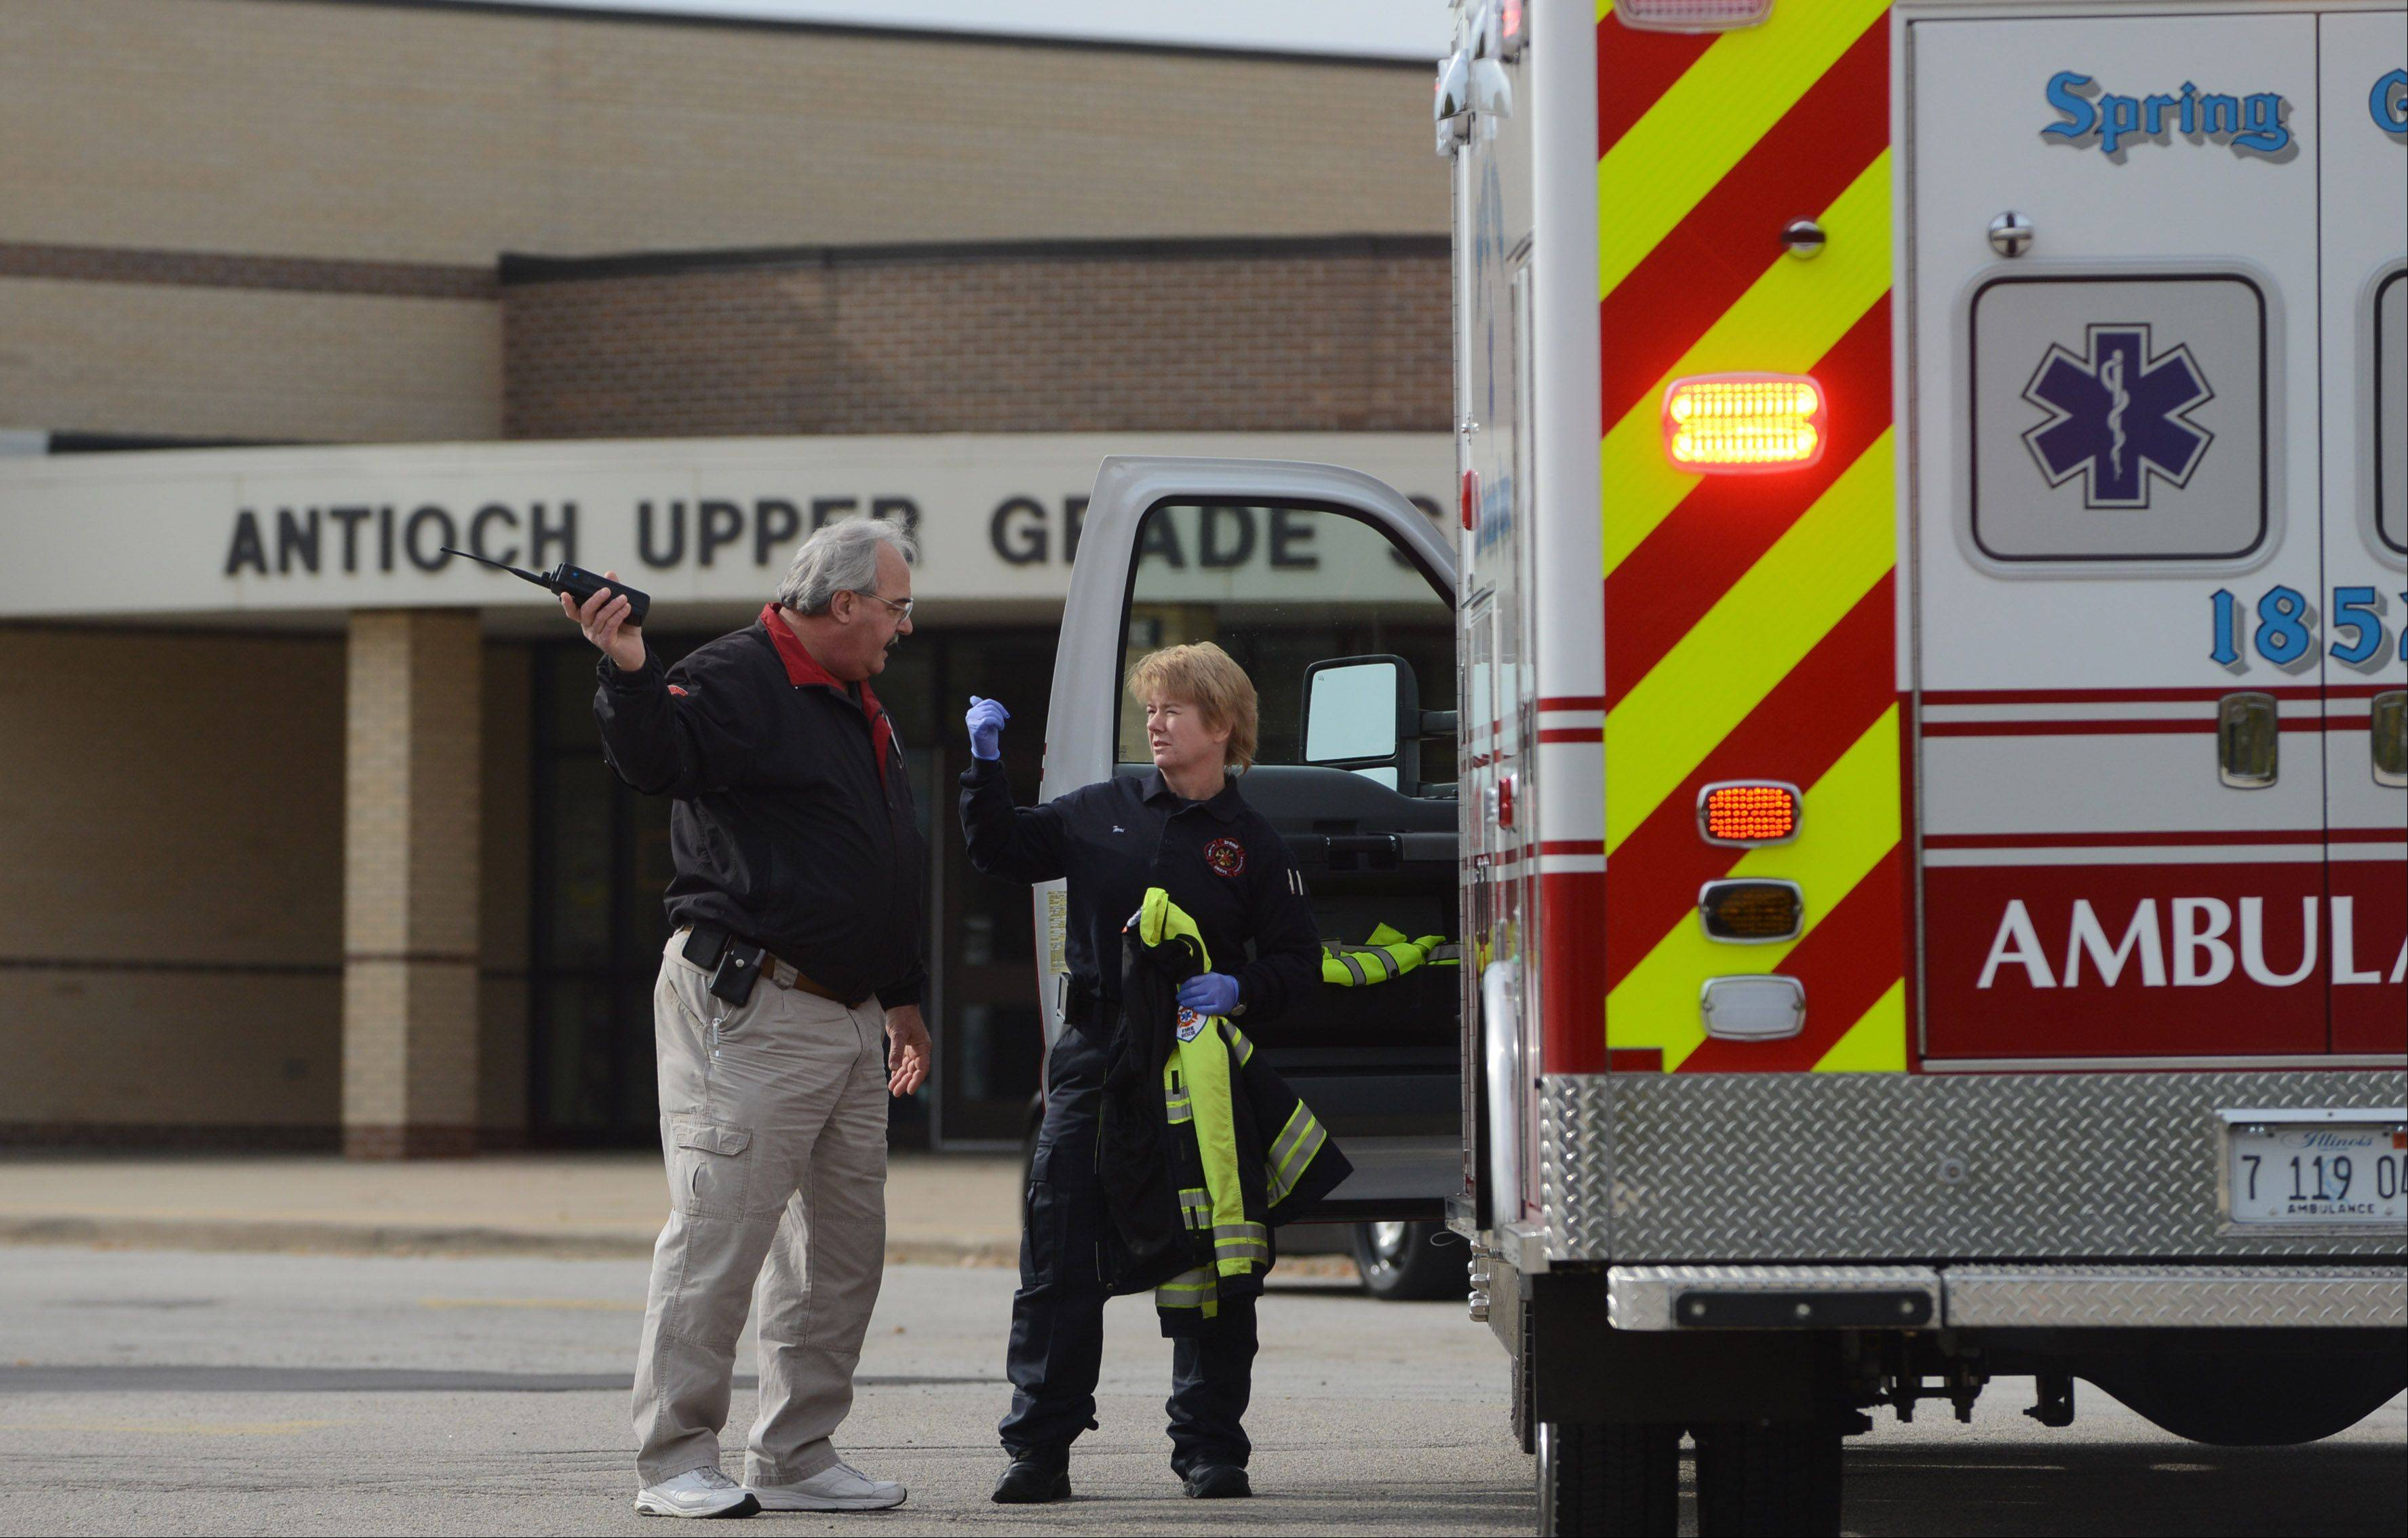 Ten Antioch Upper Grade School students were taken to Advocate Condell Medical Center Tuesday morning in Libertyville after taking a prescription painkiller.